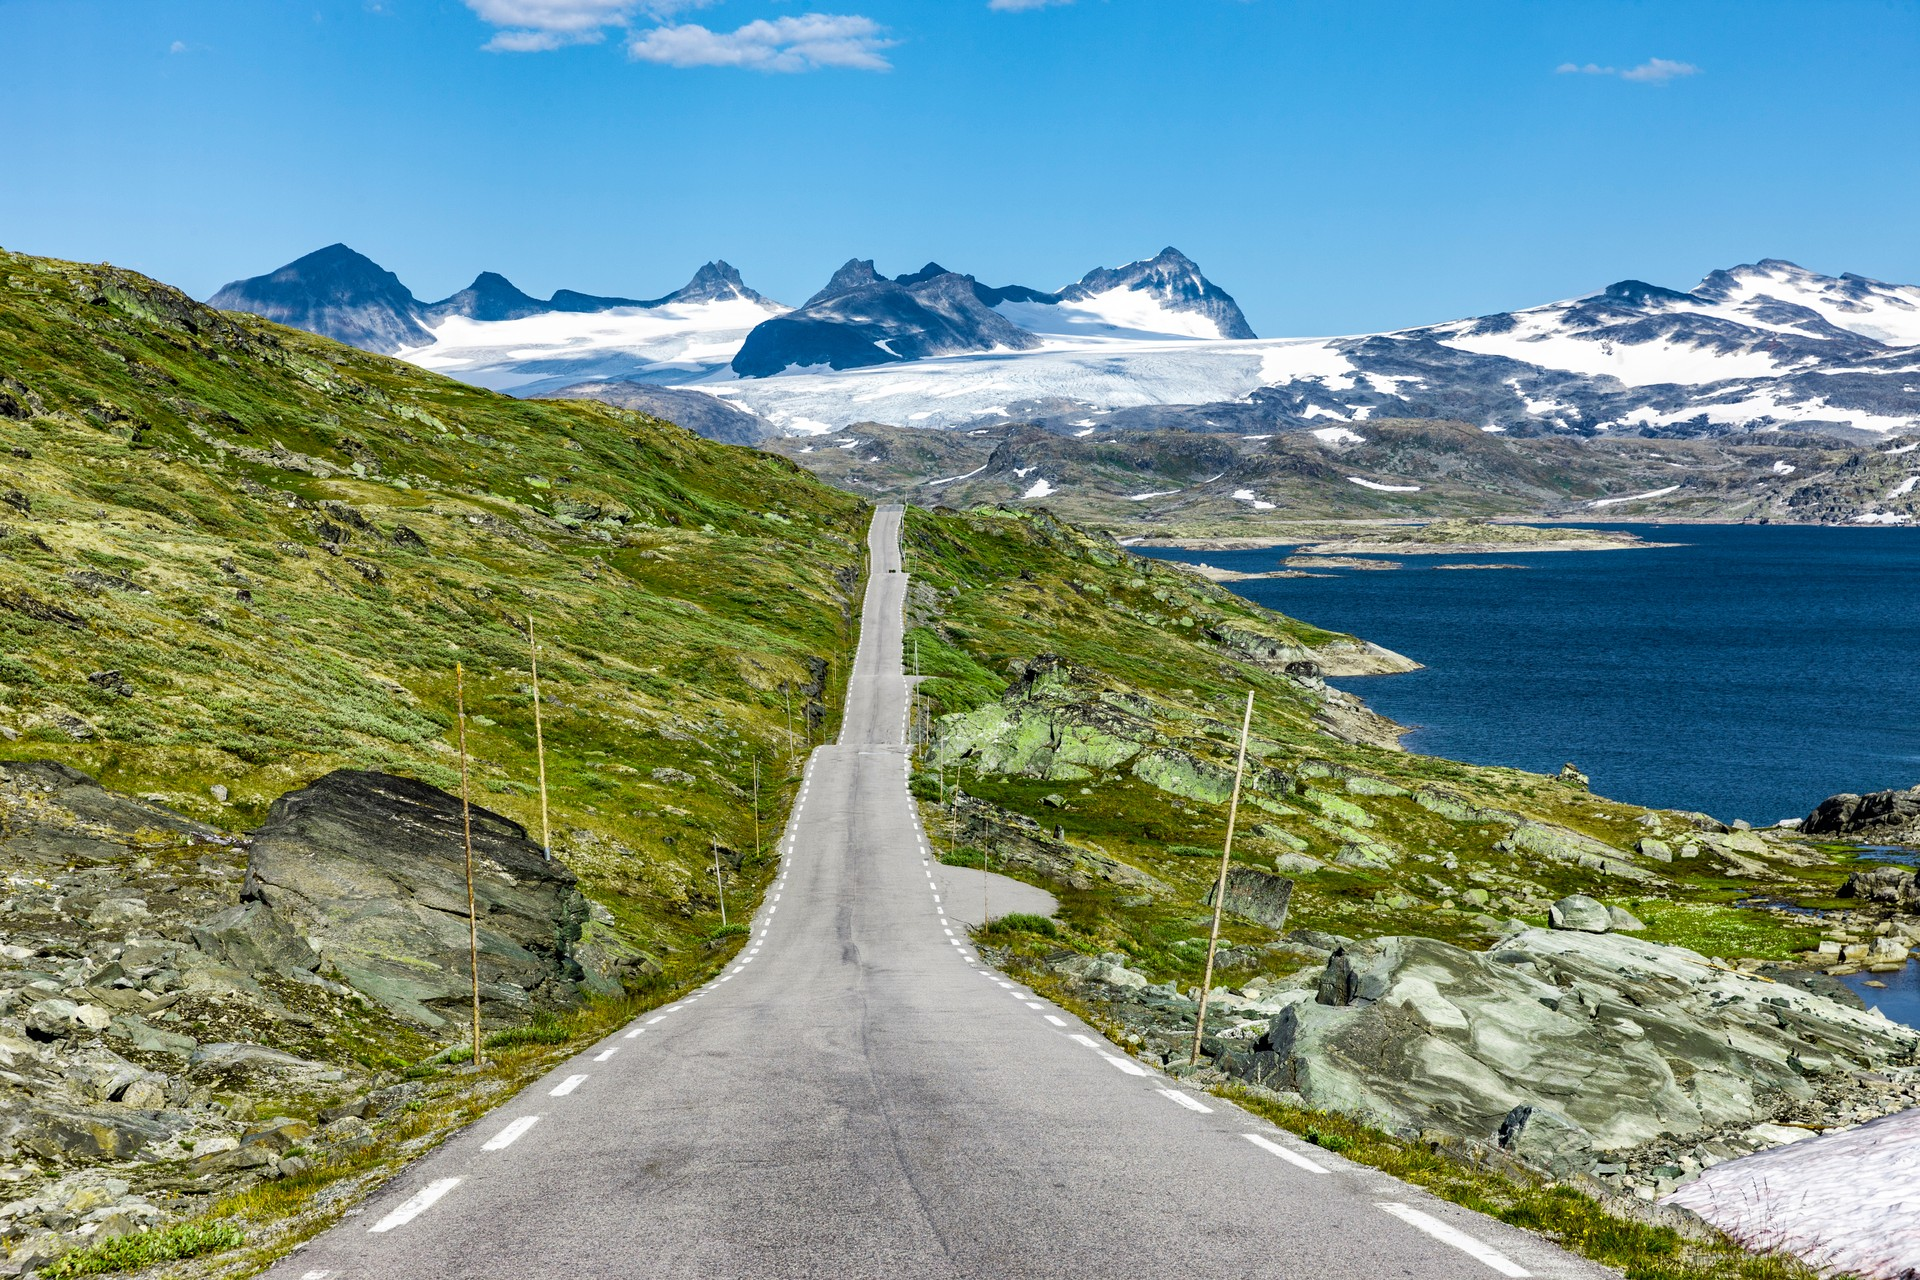 Mountain views on a road trip in Norway